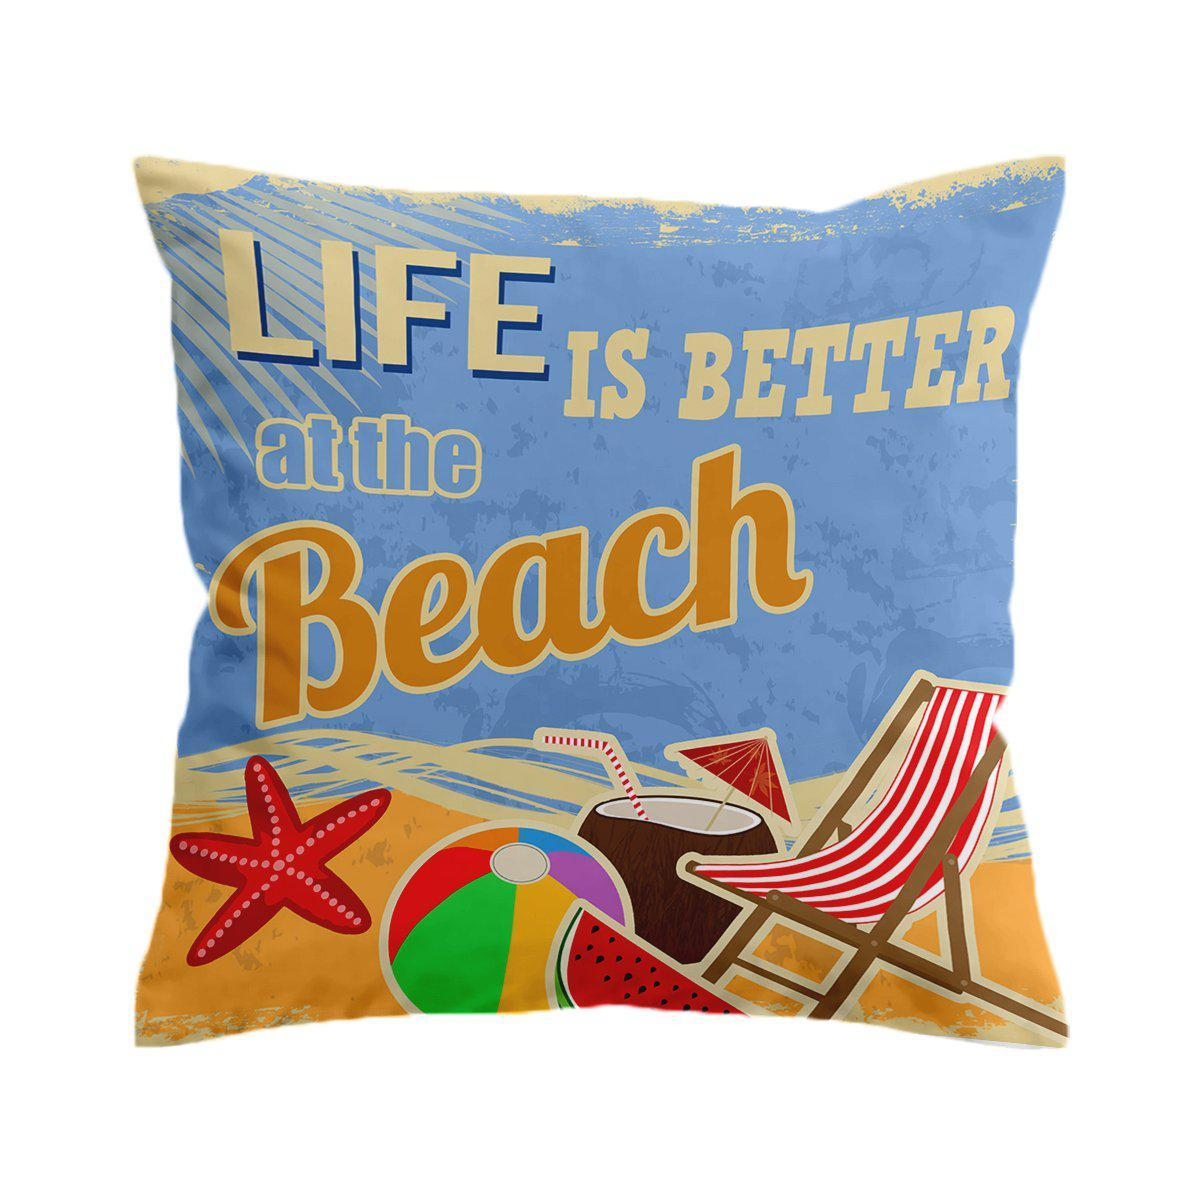 The Beach is Better Pillow Cover-Coastal Passion